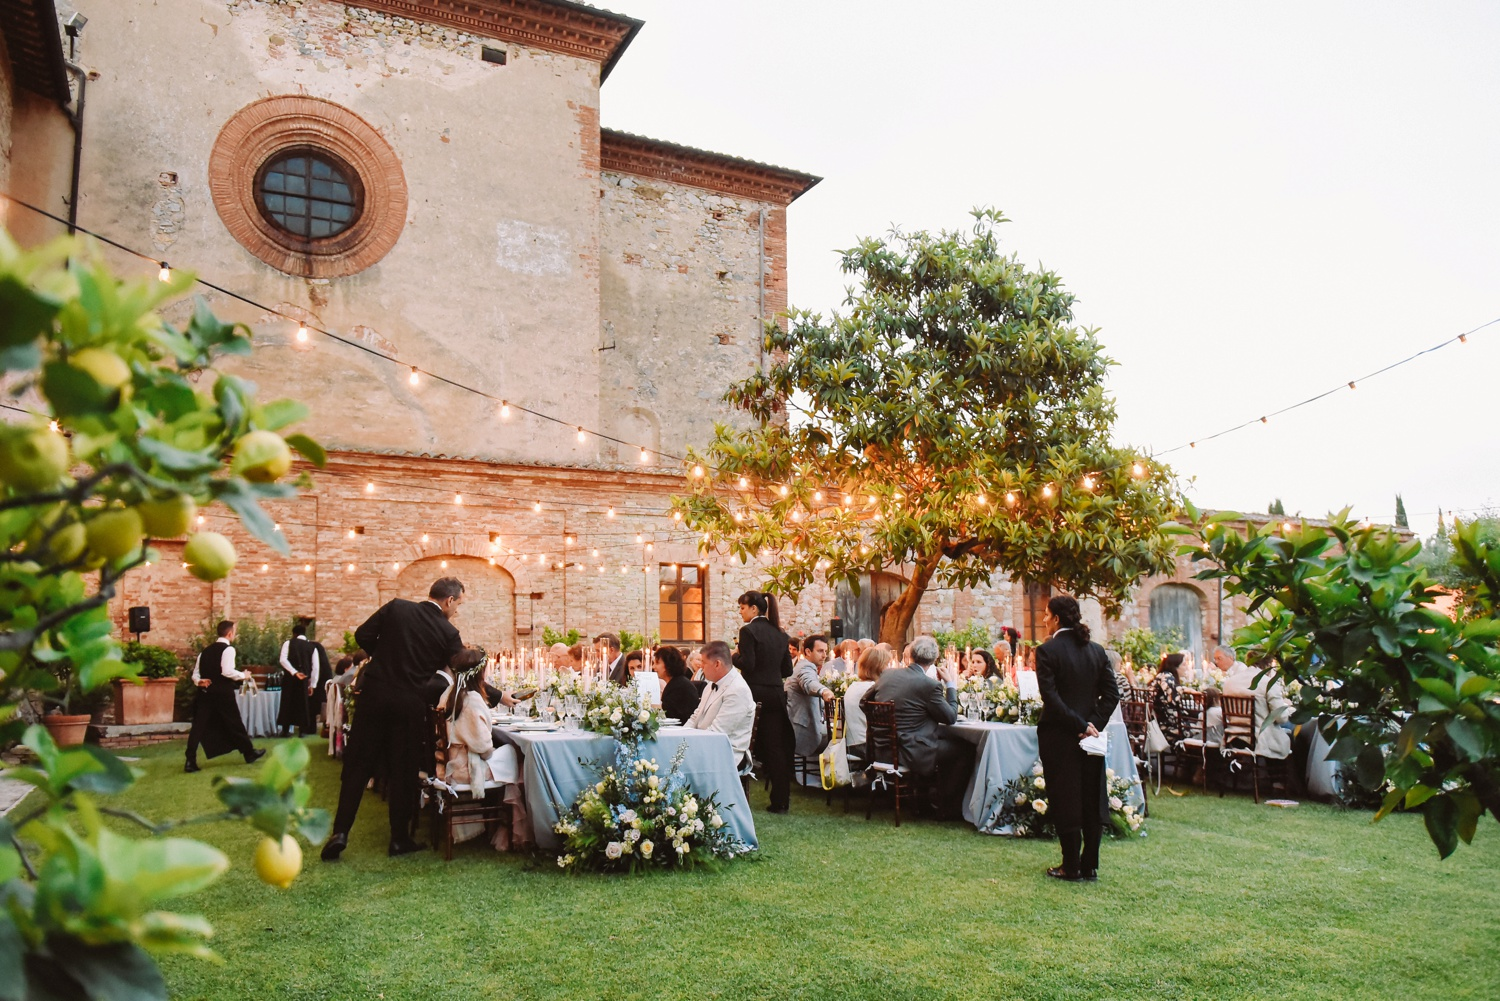 landvphotography_wedding_photographer_tuscany_0109.jpg